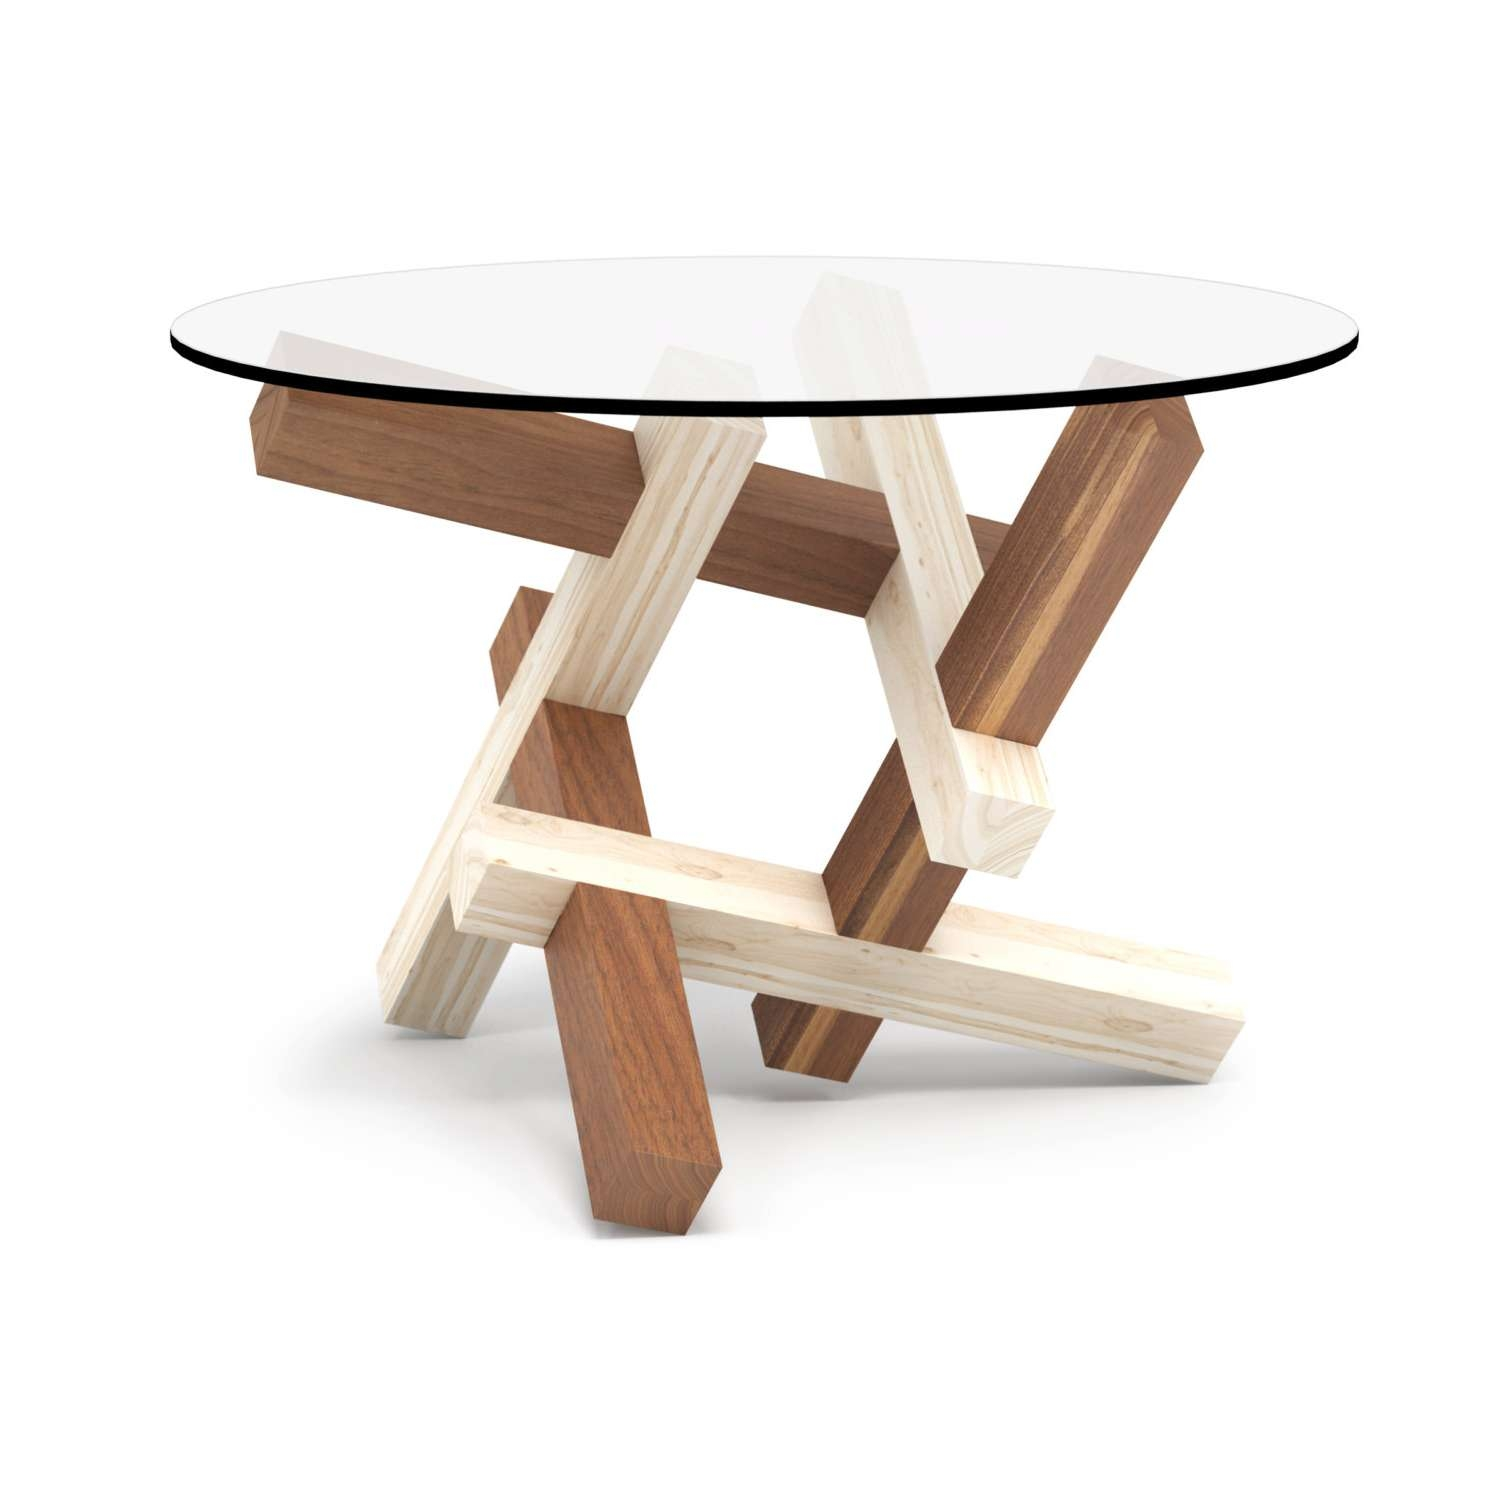 2X3 Round Wooden Coffee Table Puzzle Round Glass Table Within Well Known Puzzle Coffee Tables (View 4 of 20)